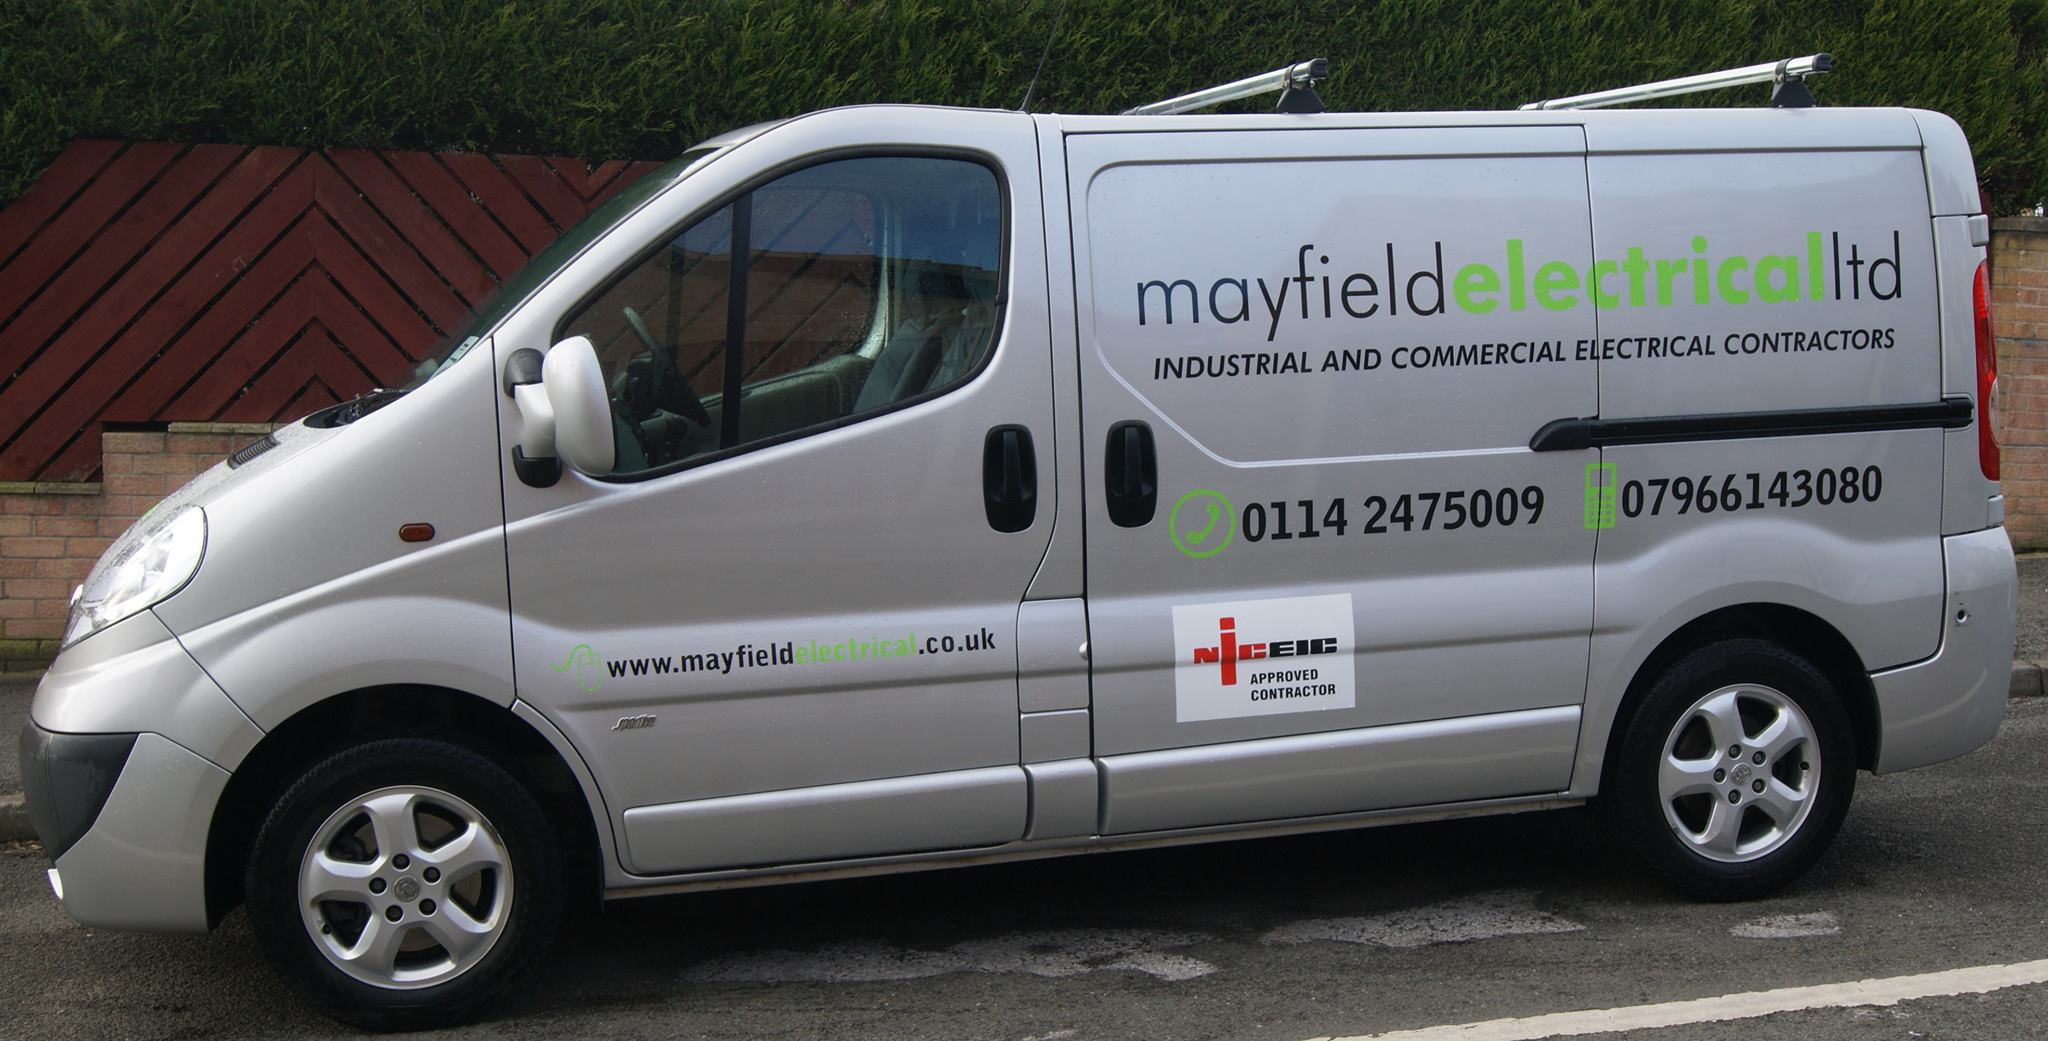 Contact Mayfield Electrical